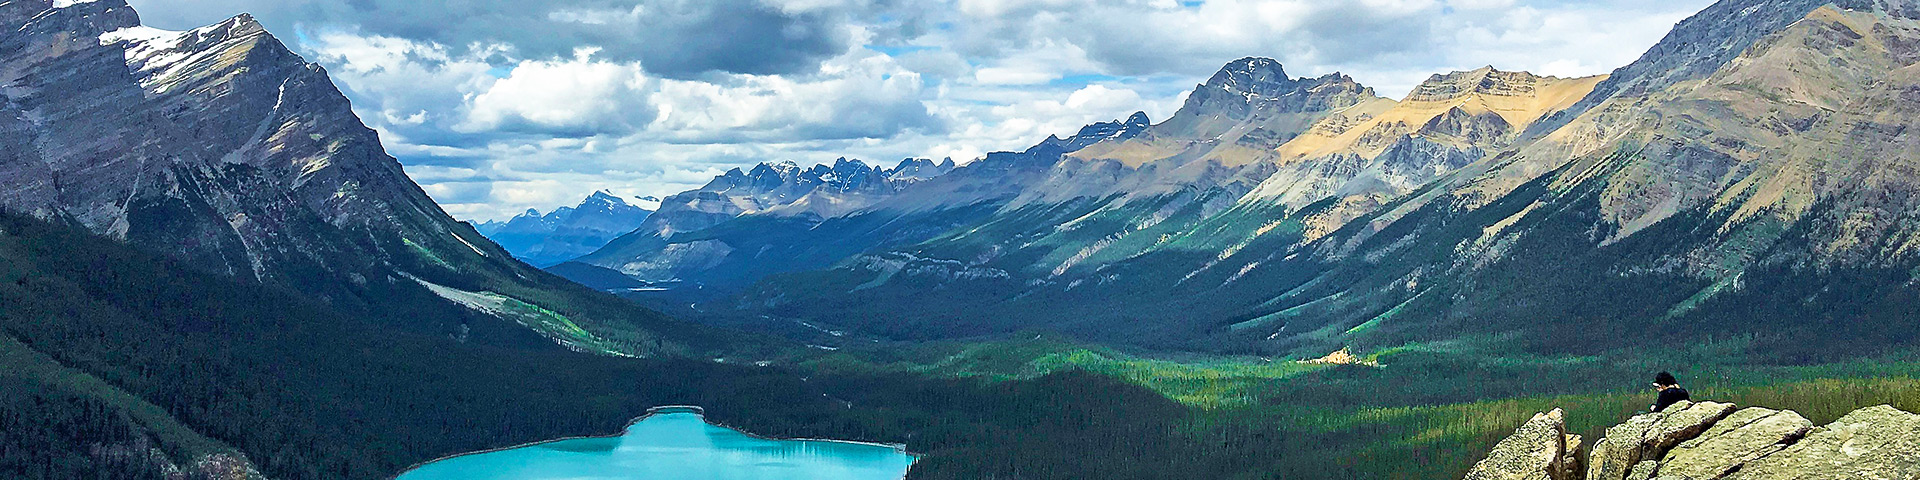 The Stunning Peyto Lake - Amazing Images & Full Guide